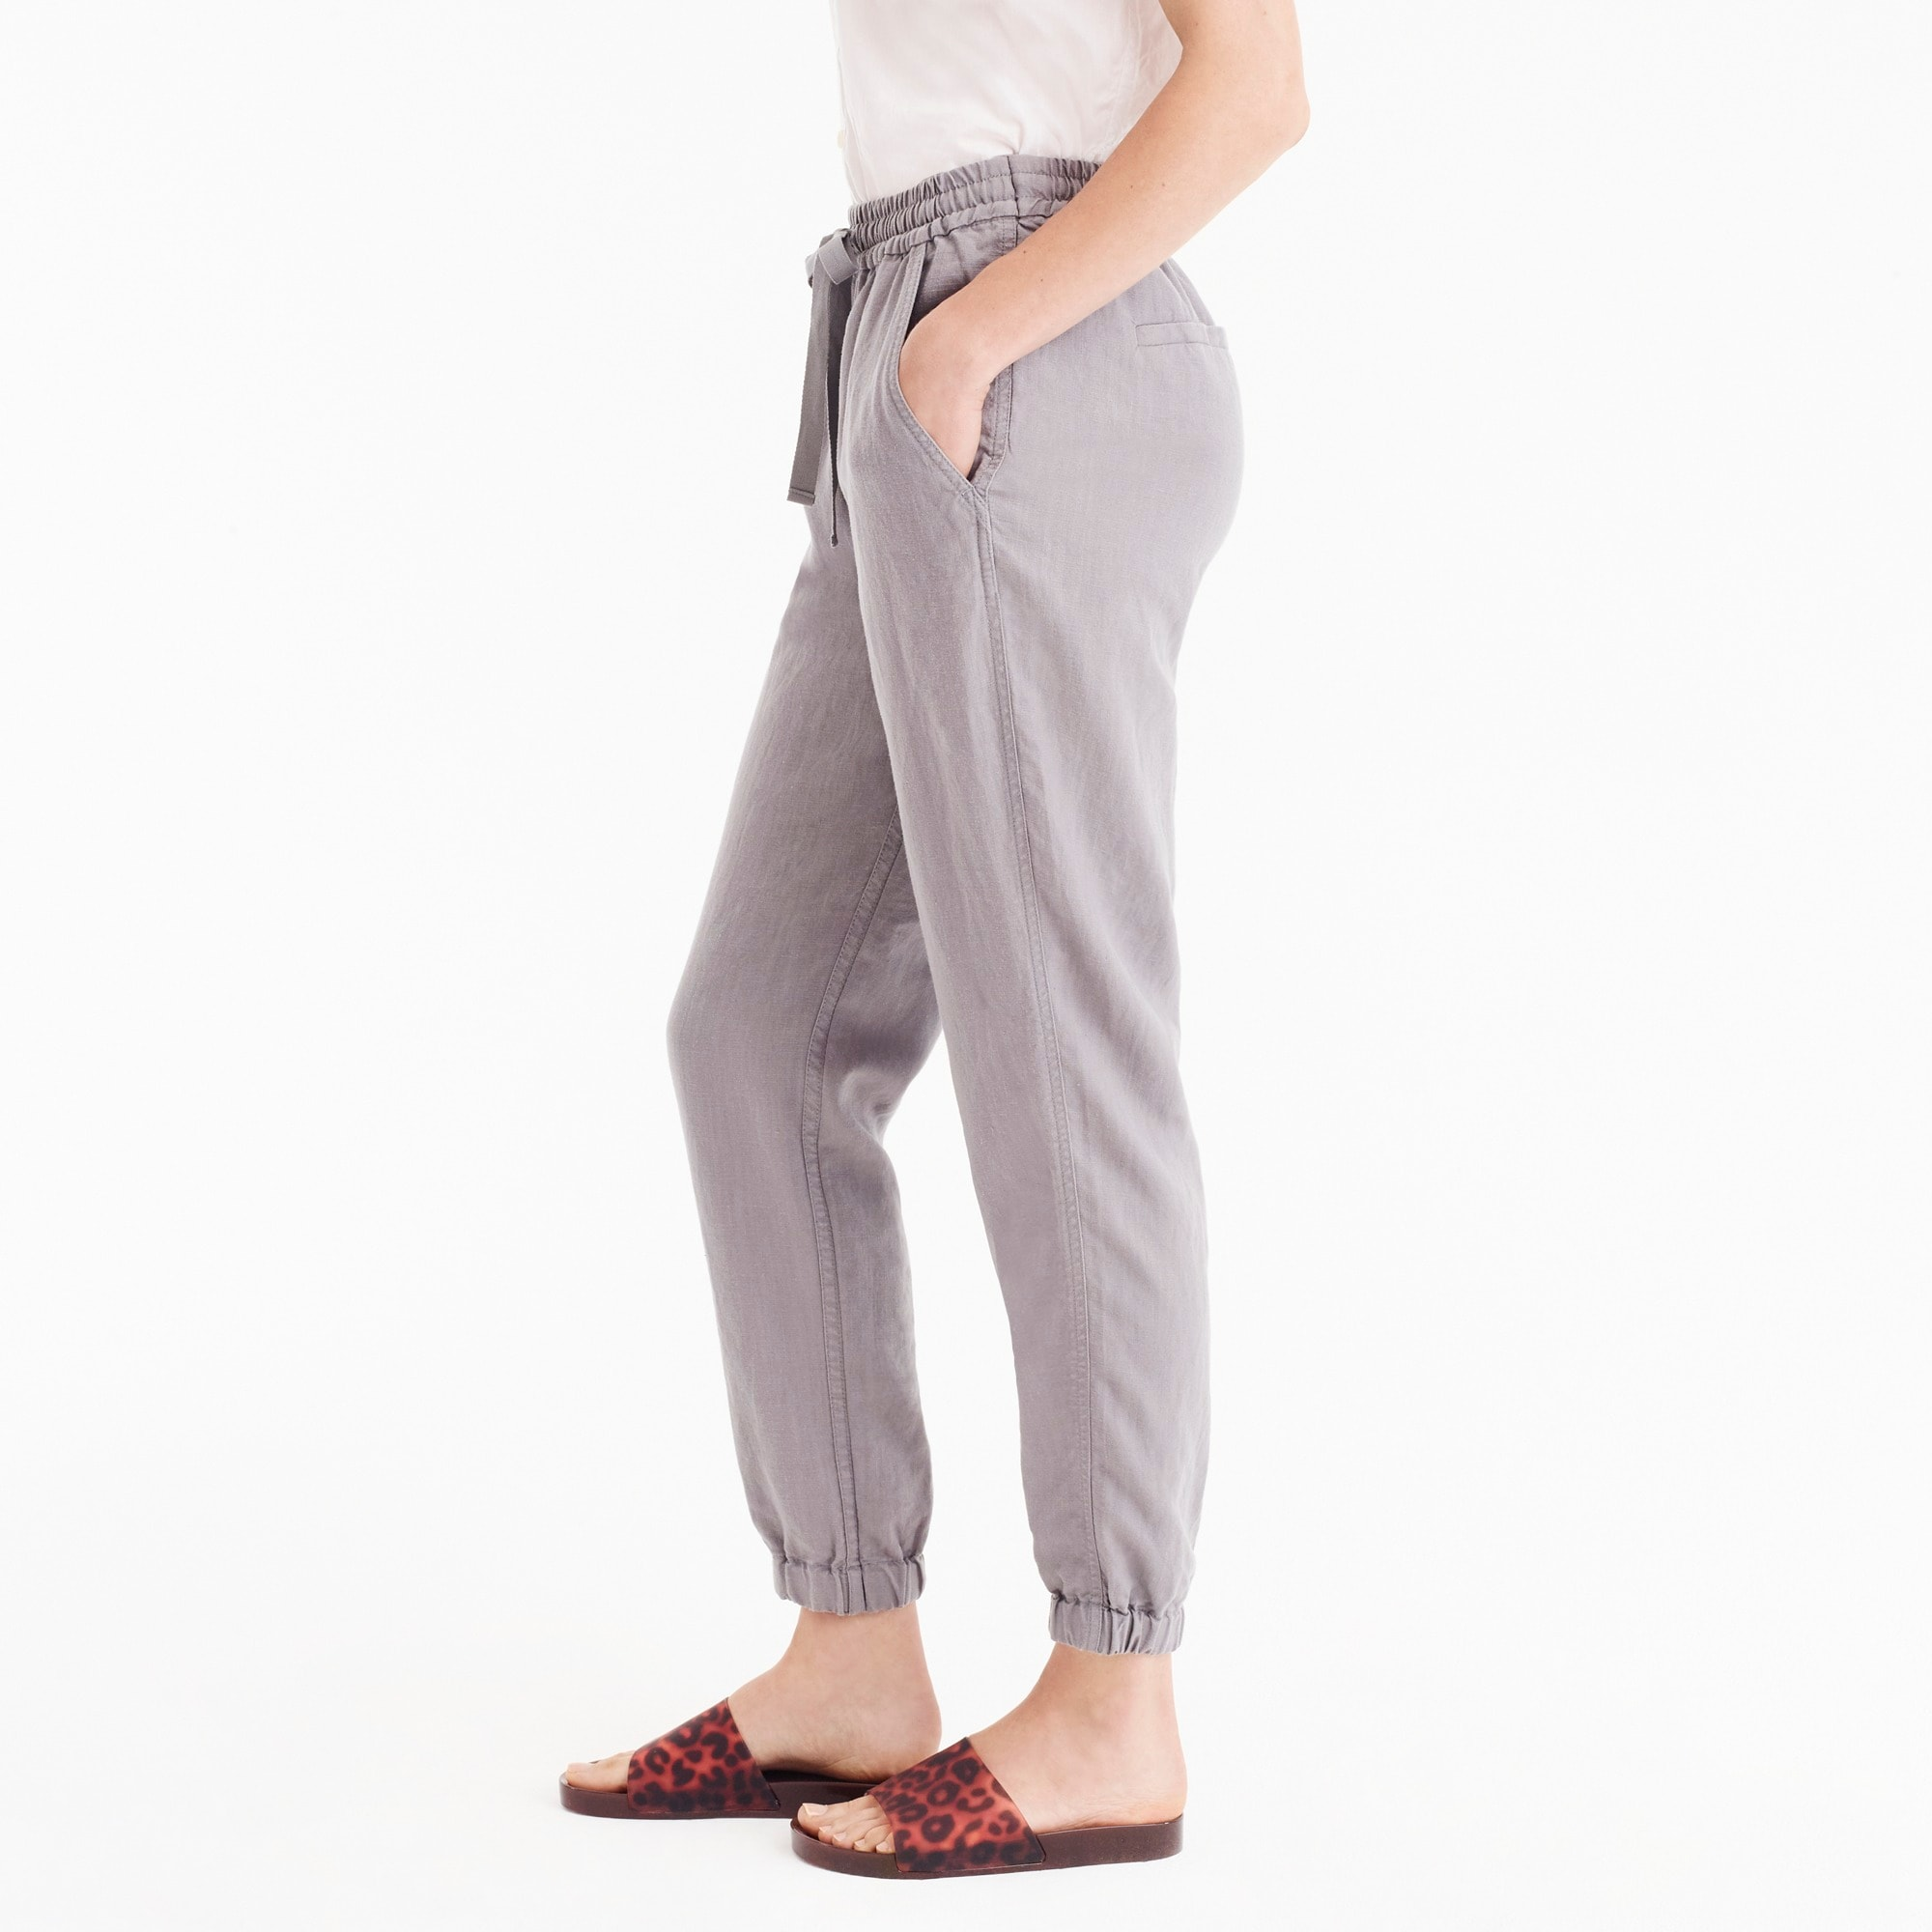 Image 5 for Point Sur seaside pant in linen